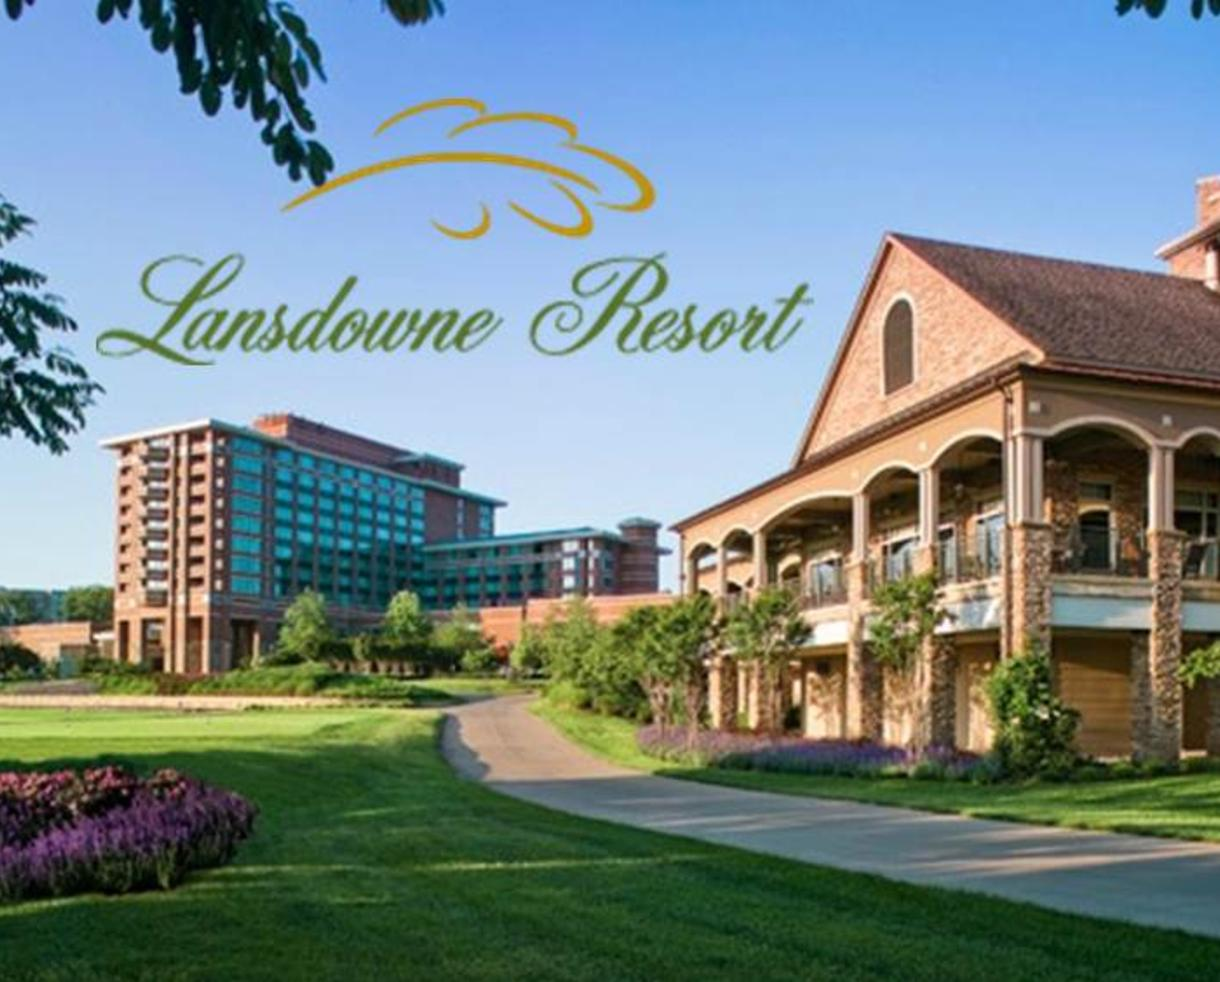 $229 for Lansdowne Resort Overnight Stay + $100 Resort Credit, Valet Parking & MORE! - Leesburg, Virginia